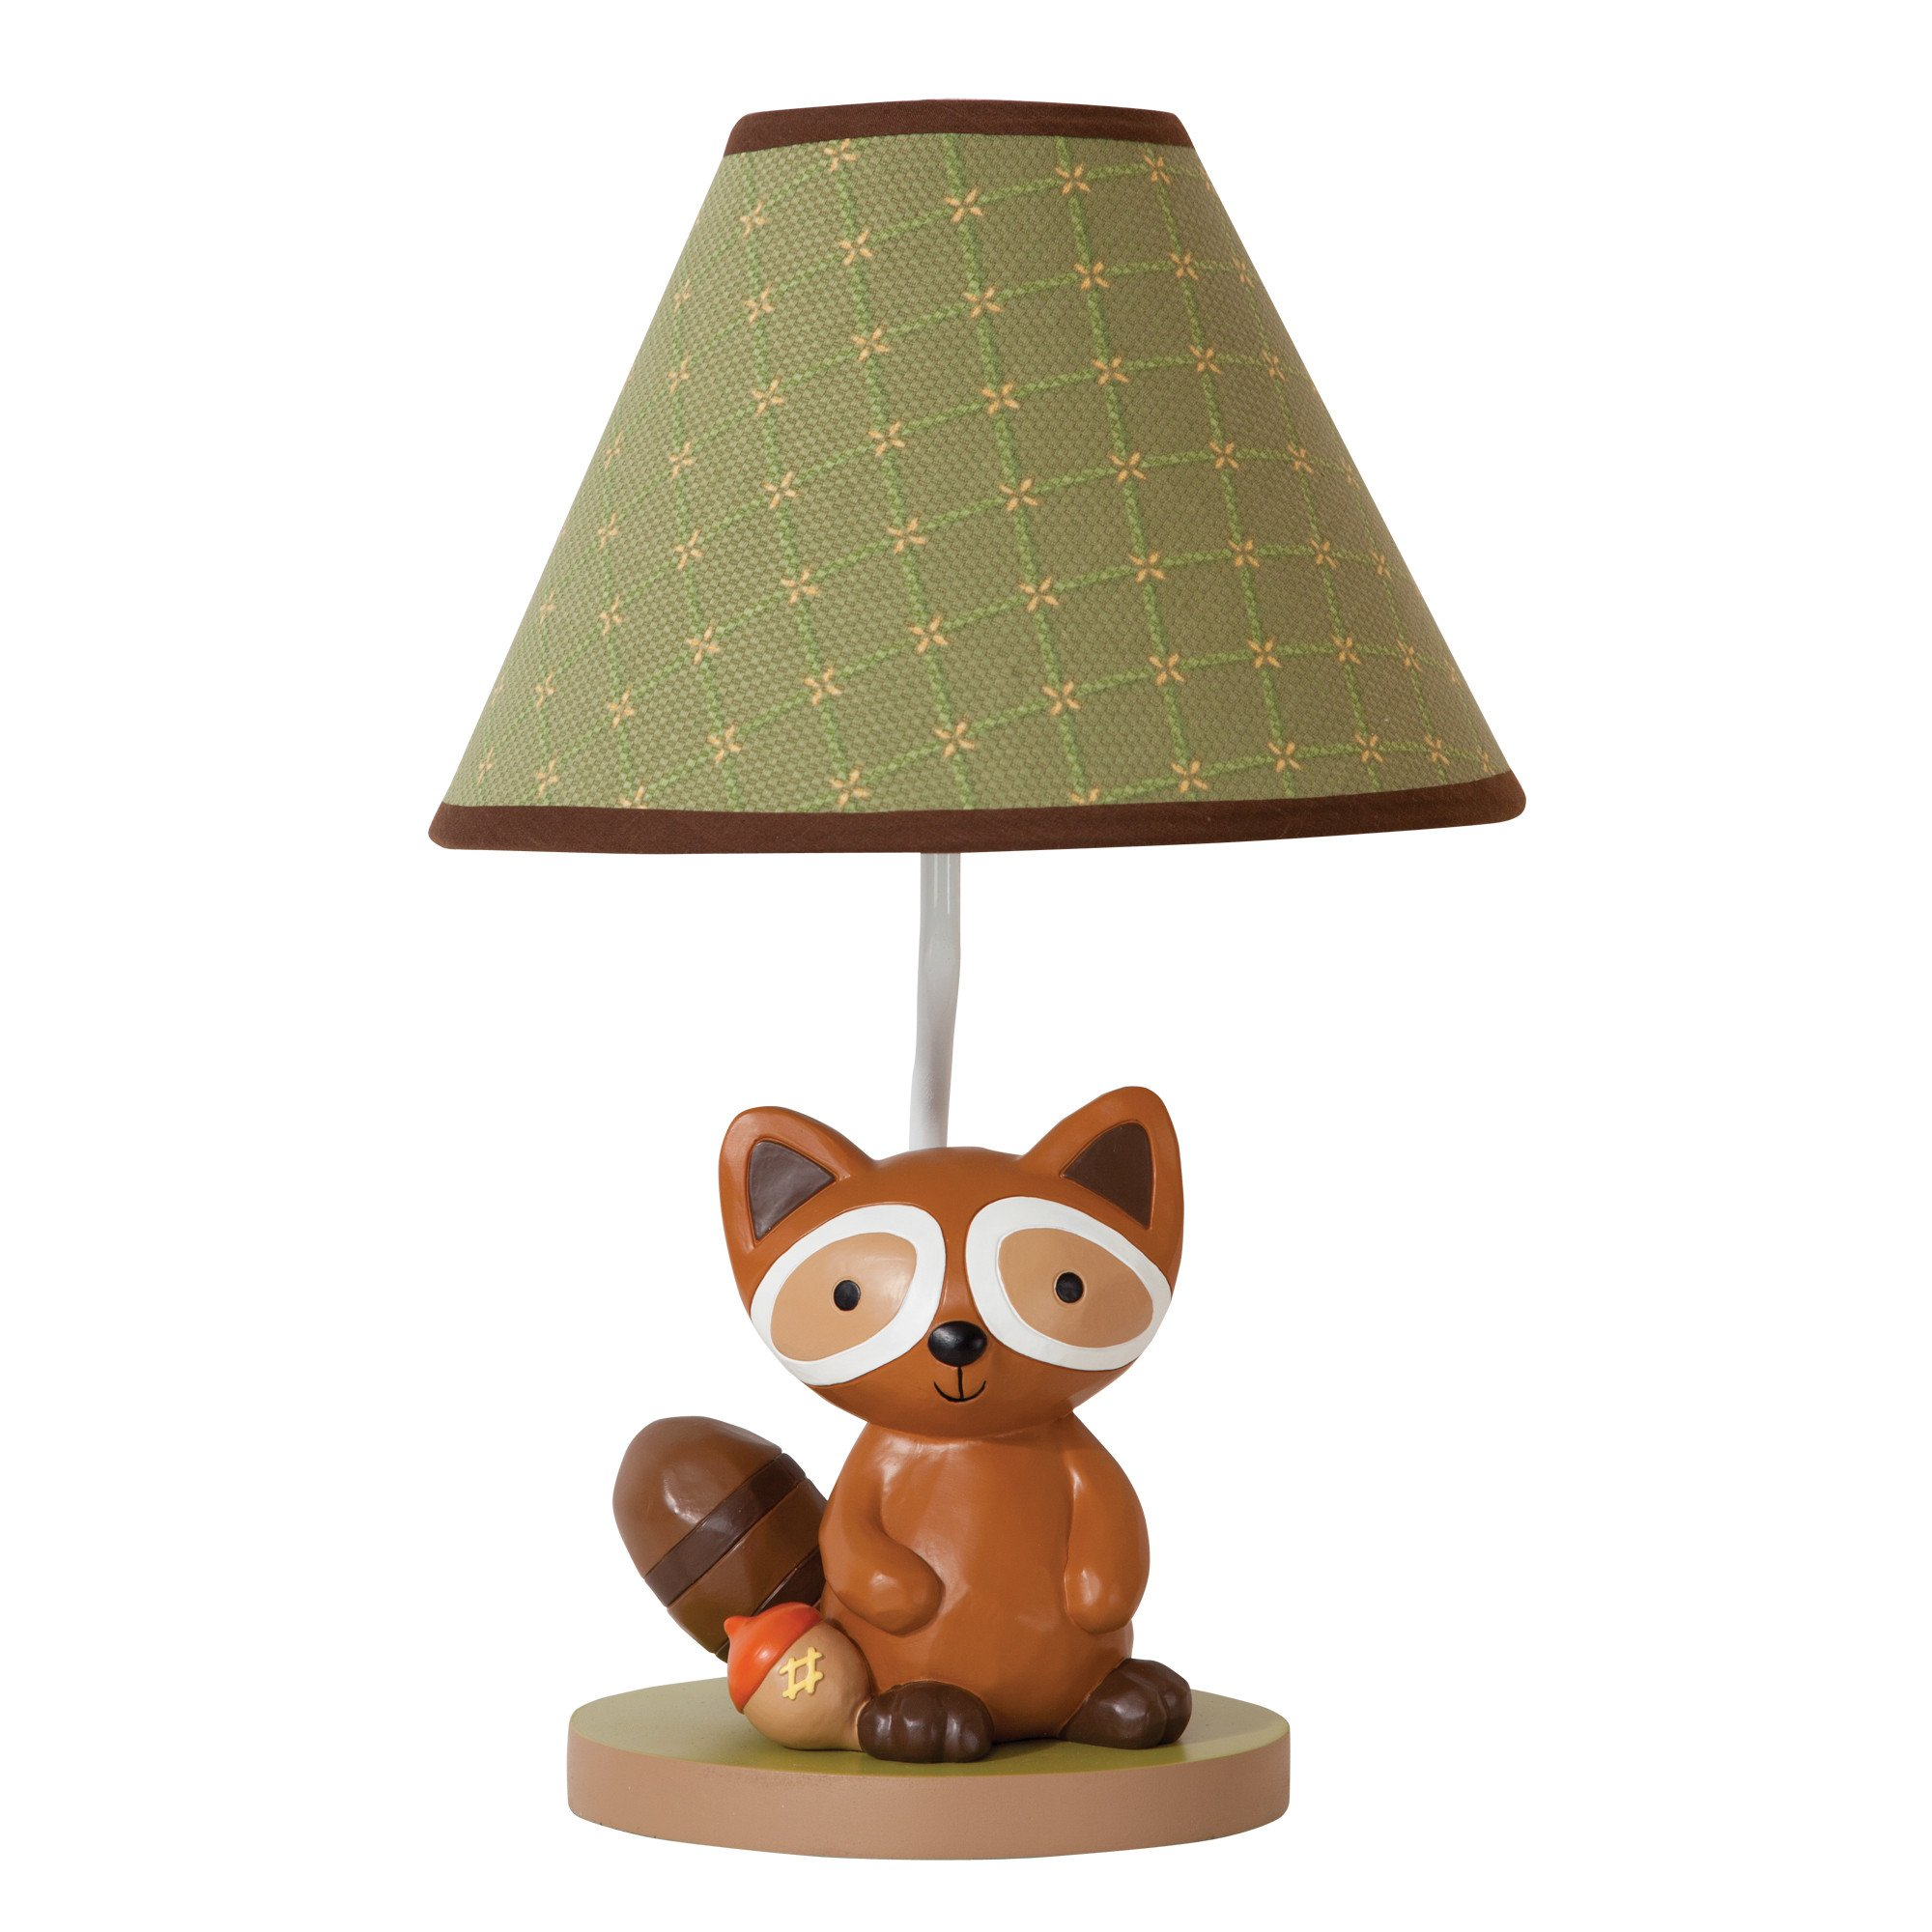 Lambs & Ivy Echo Lamp with Shade & Bulb Brown, Green, Animals, Woodland by Lambs & Ivy